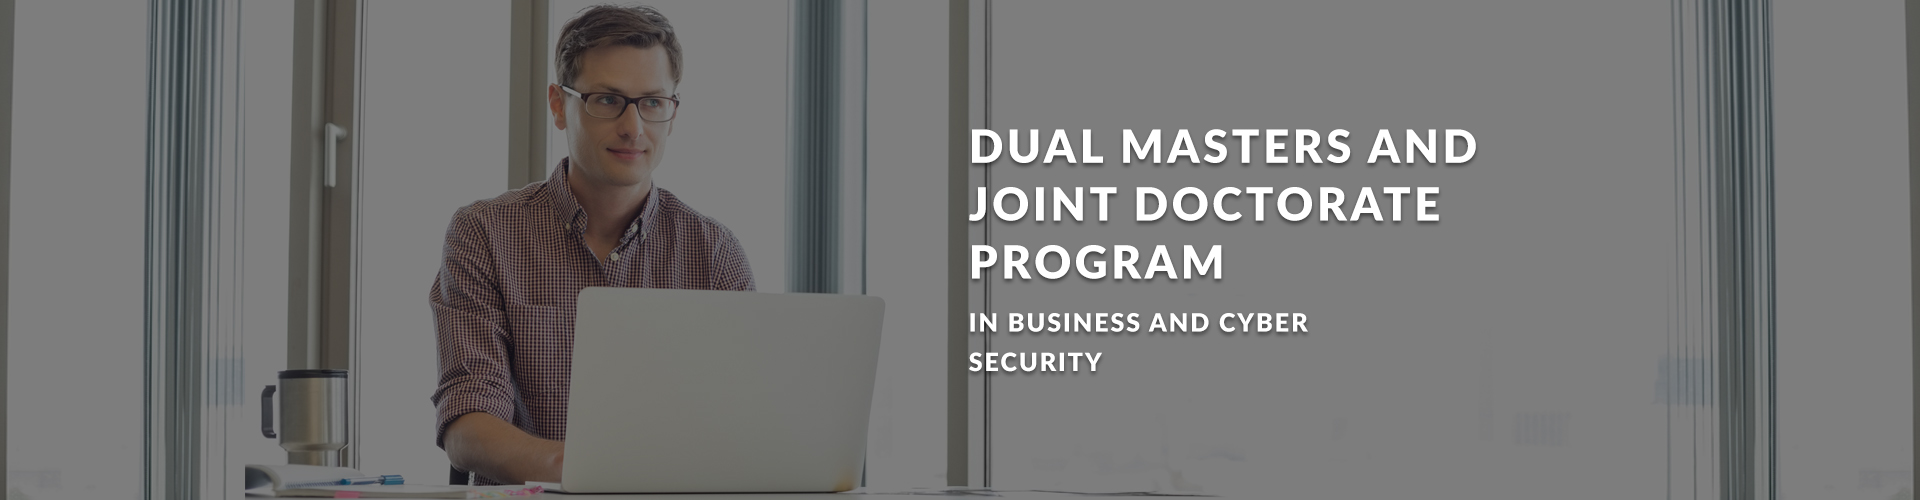 Dual Masters and Joint Doctorate Program